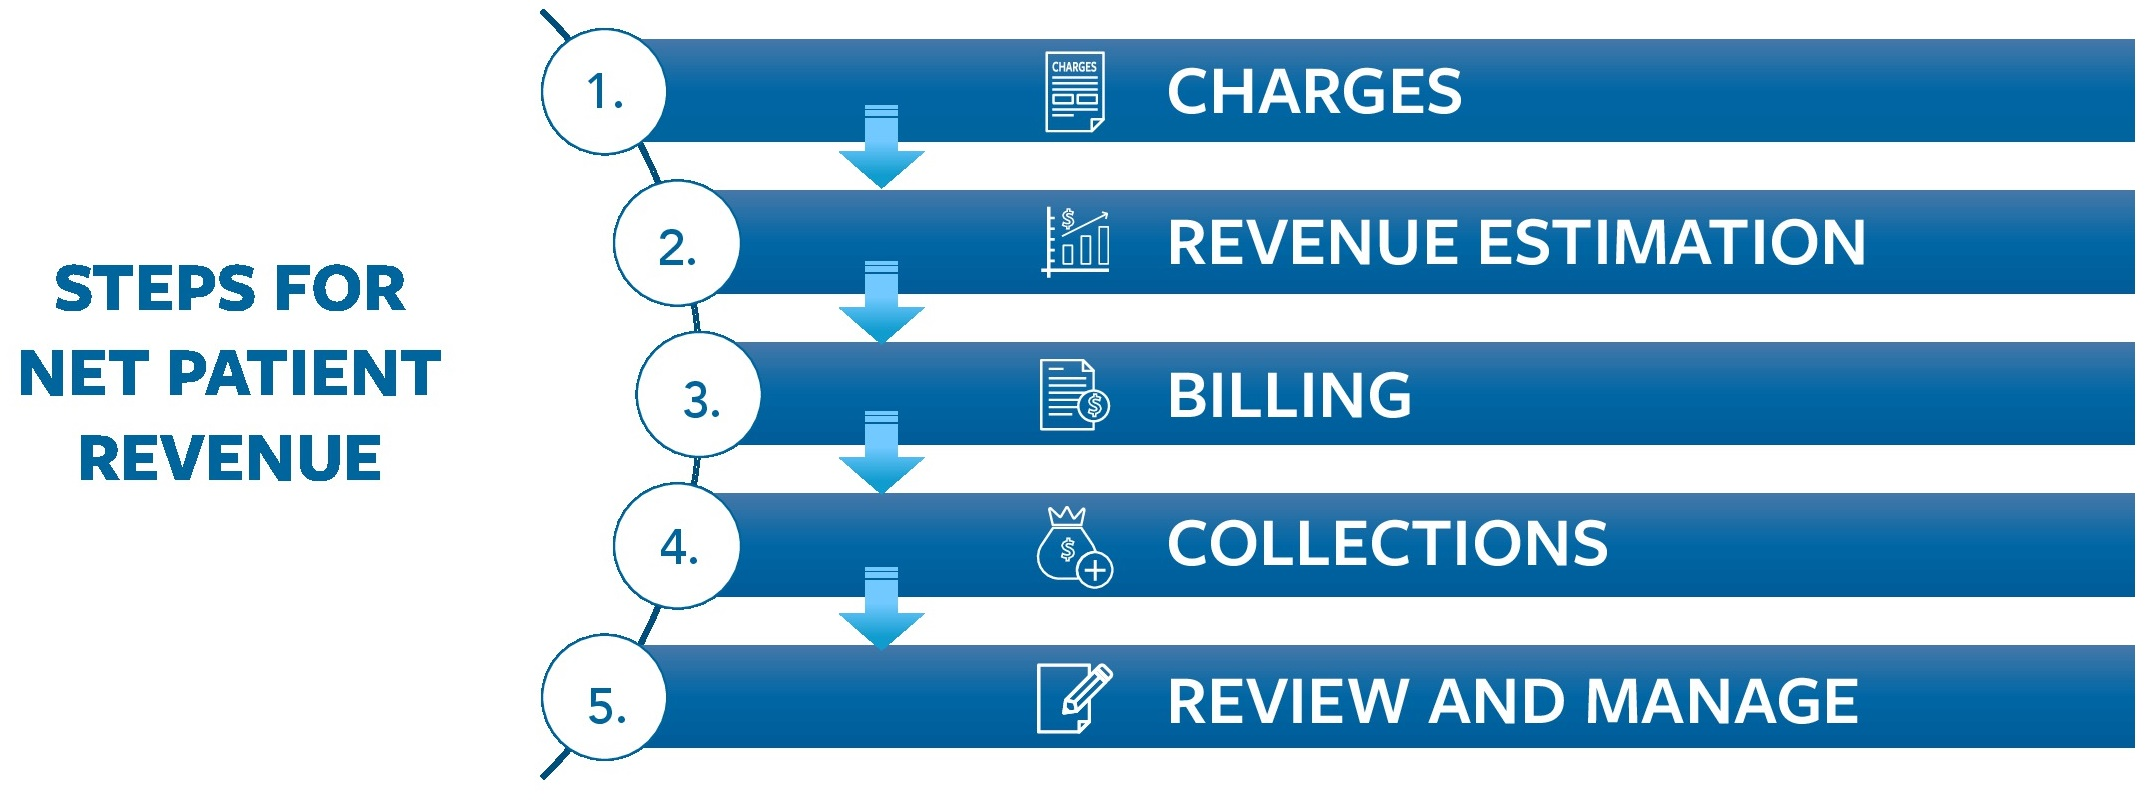 steps for patient revenue